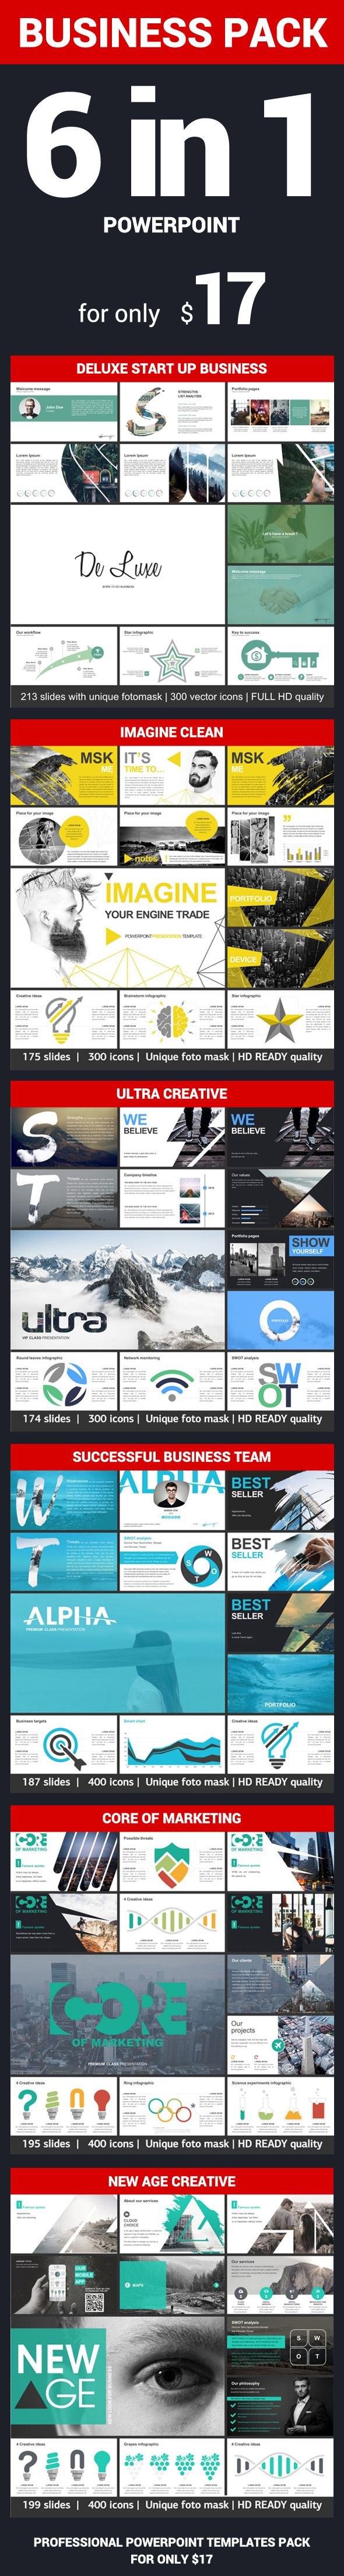 Business Pack Powerpoint